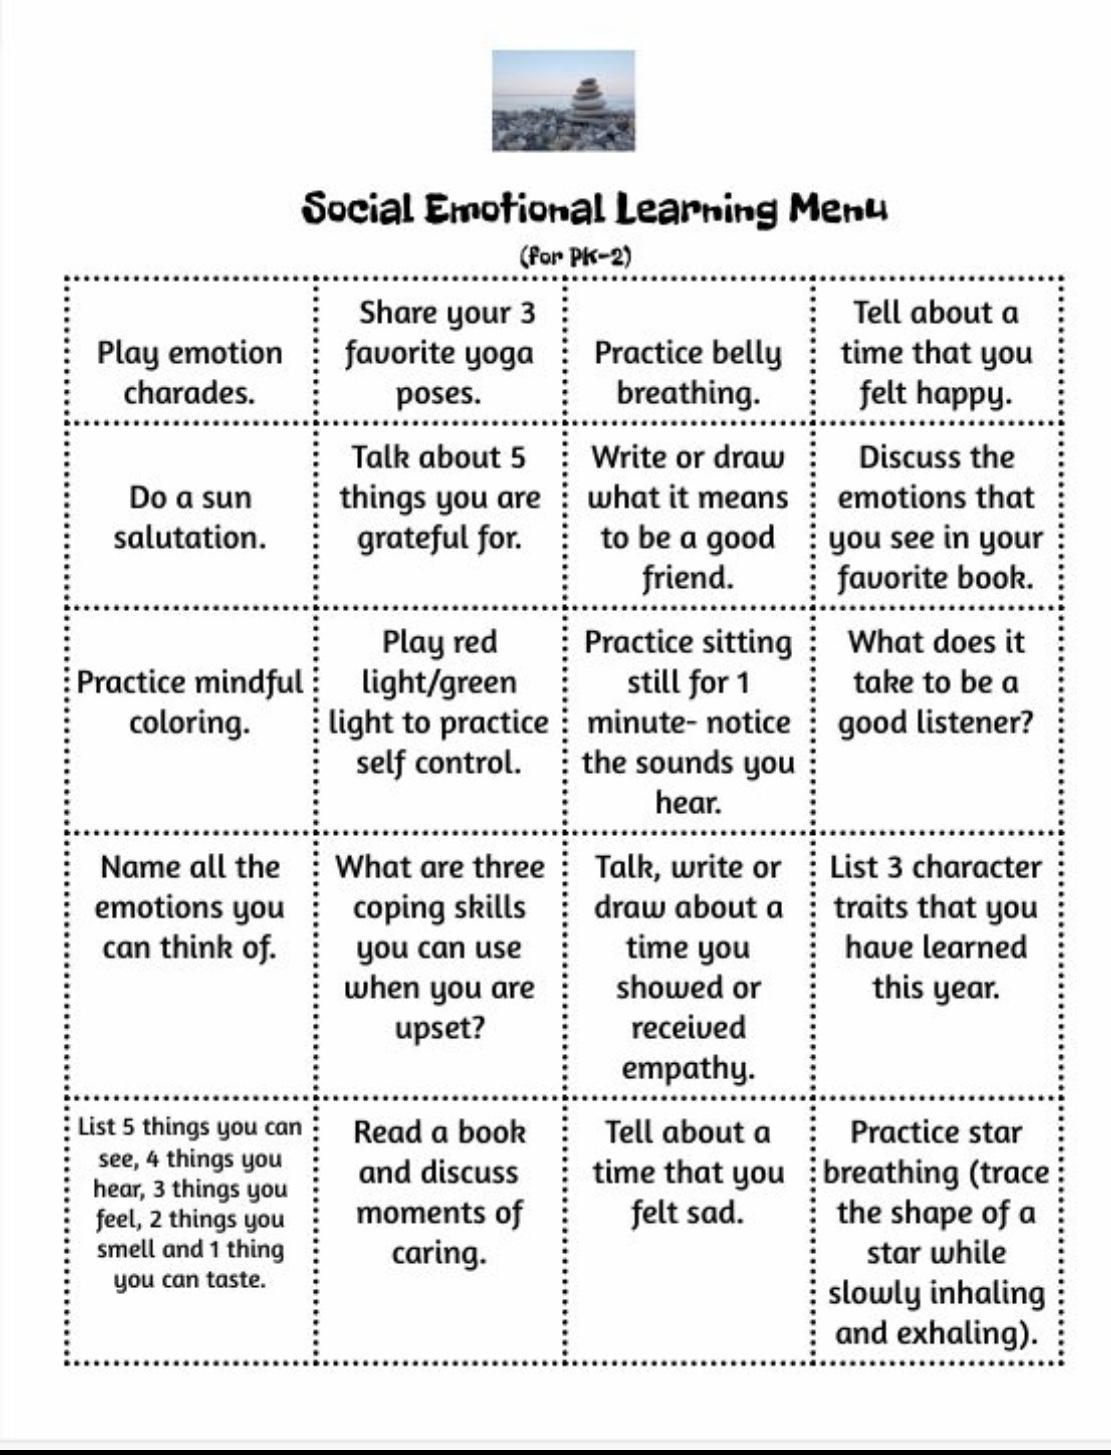 Social Emotional Learning Menu